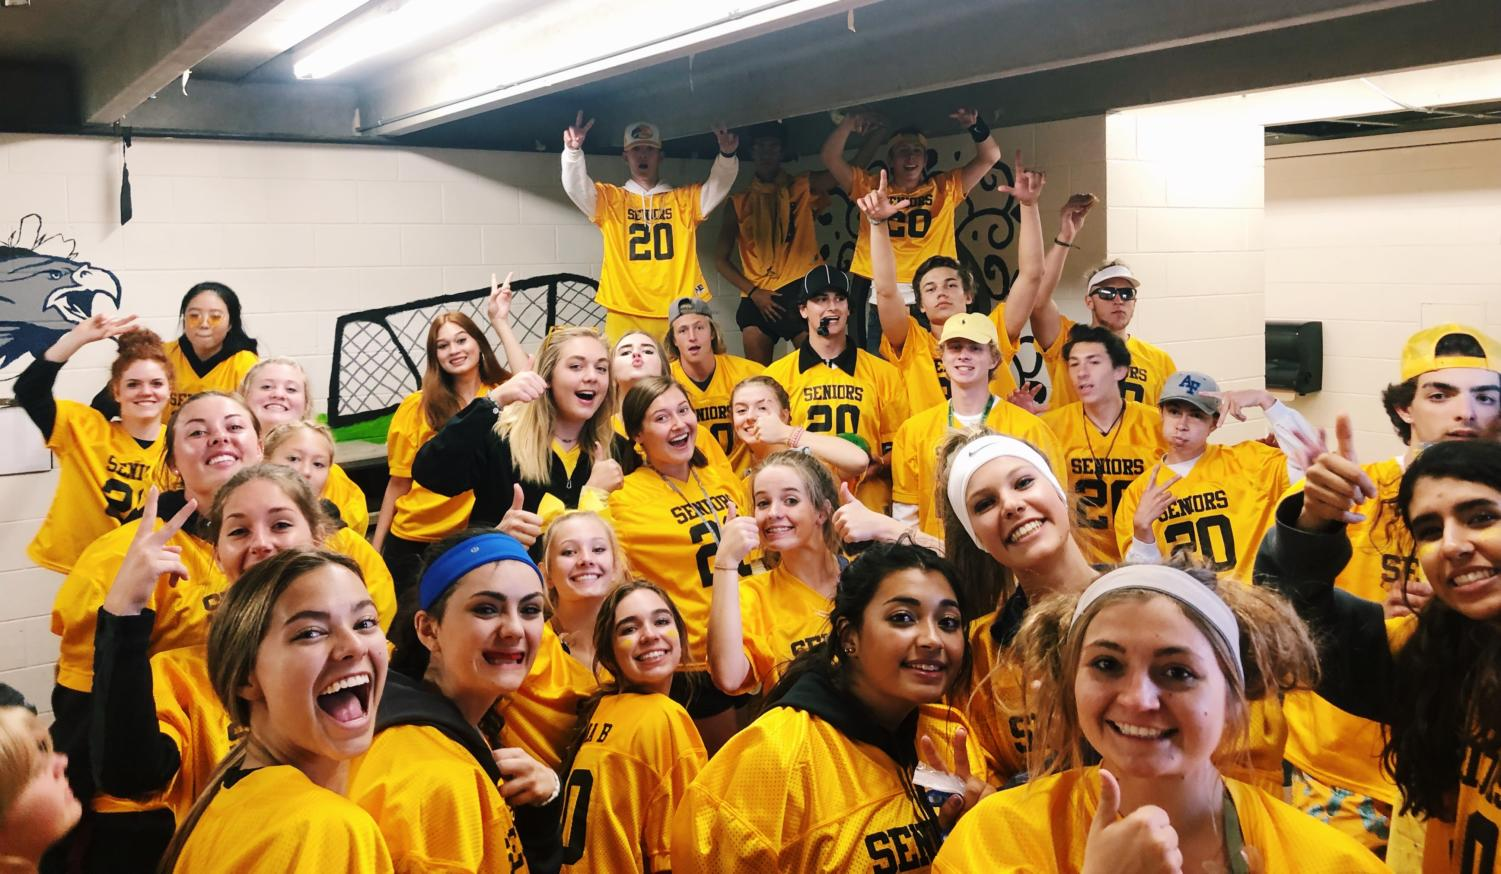 Senior students gathered in the outdoor locker room getting pumped for the Powderpuff game.